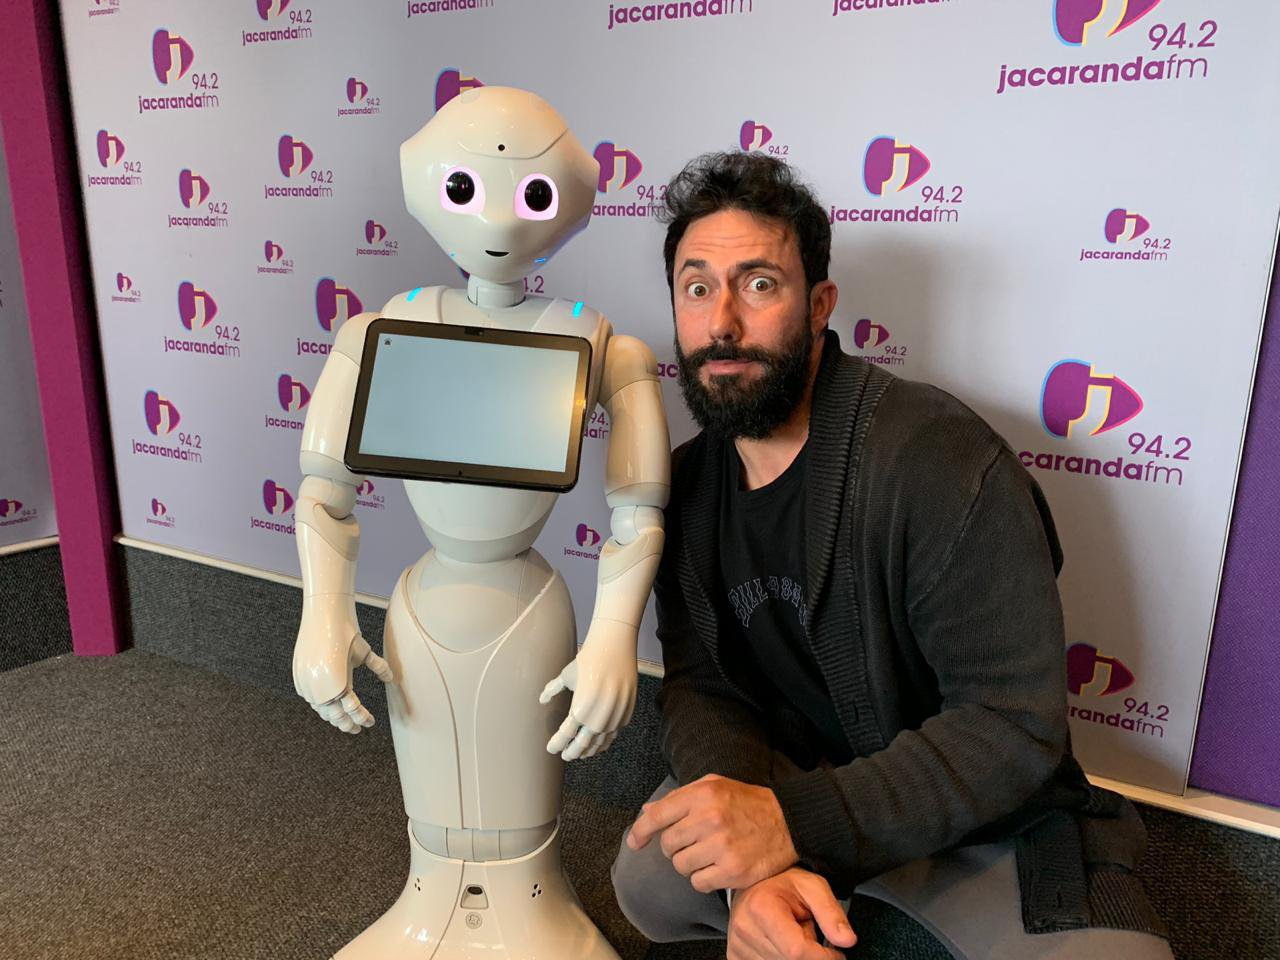 The adorable humaniod robot Pepper answers your questions